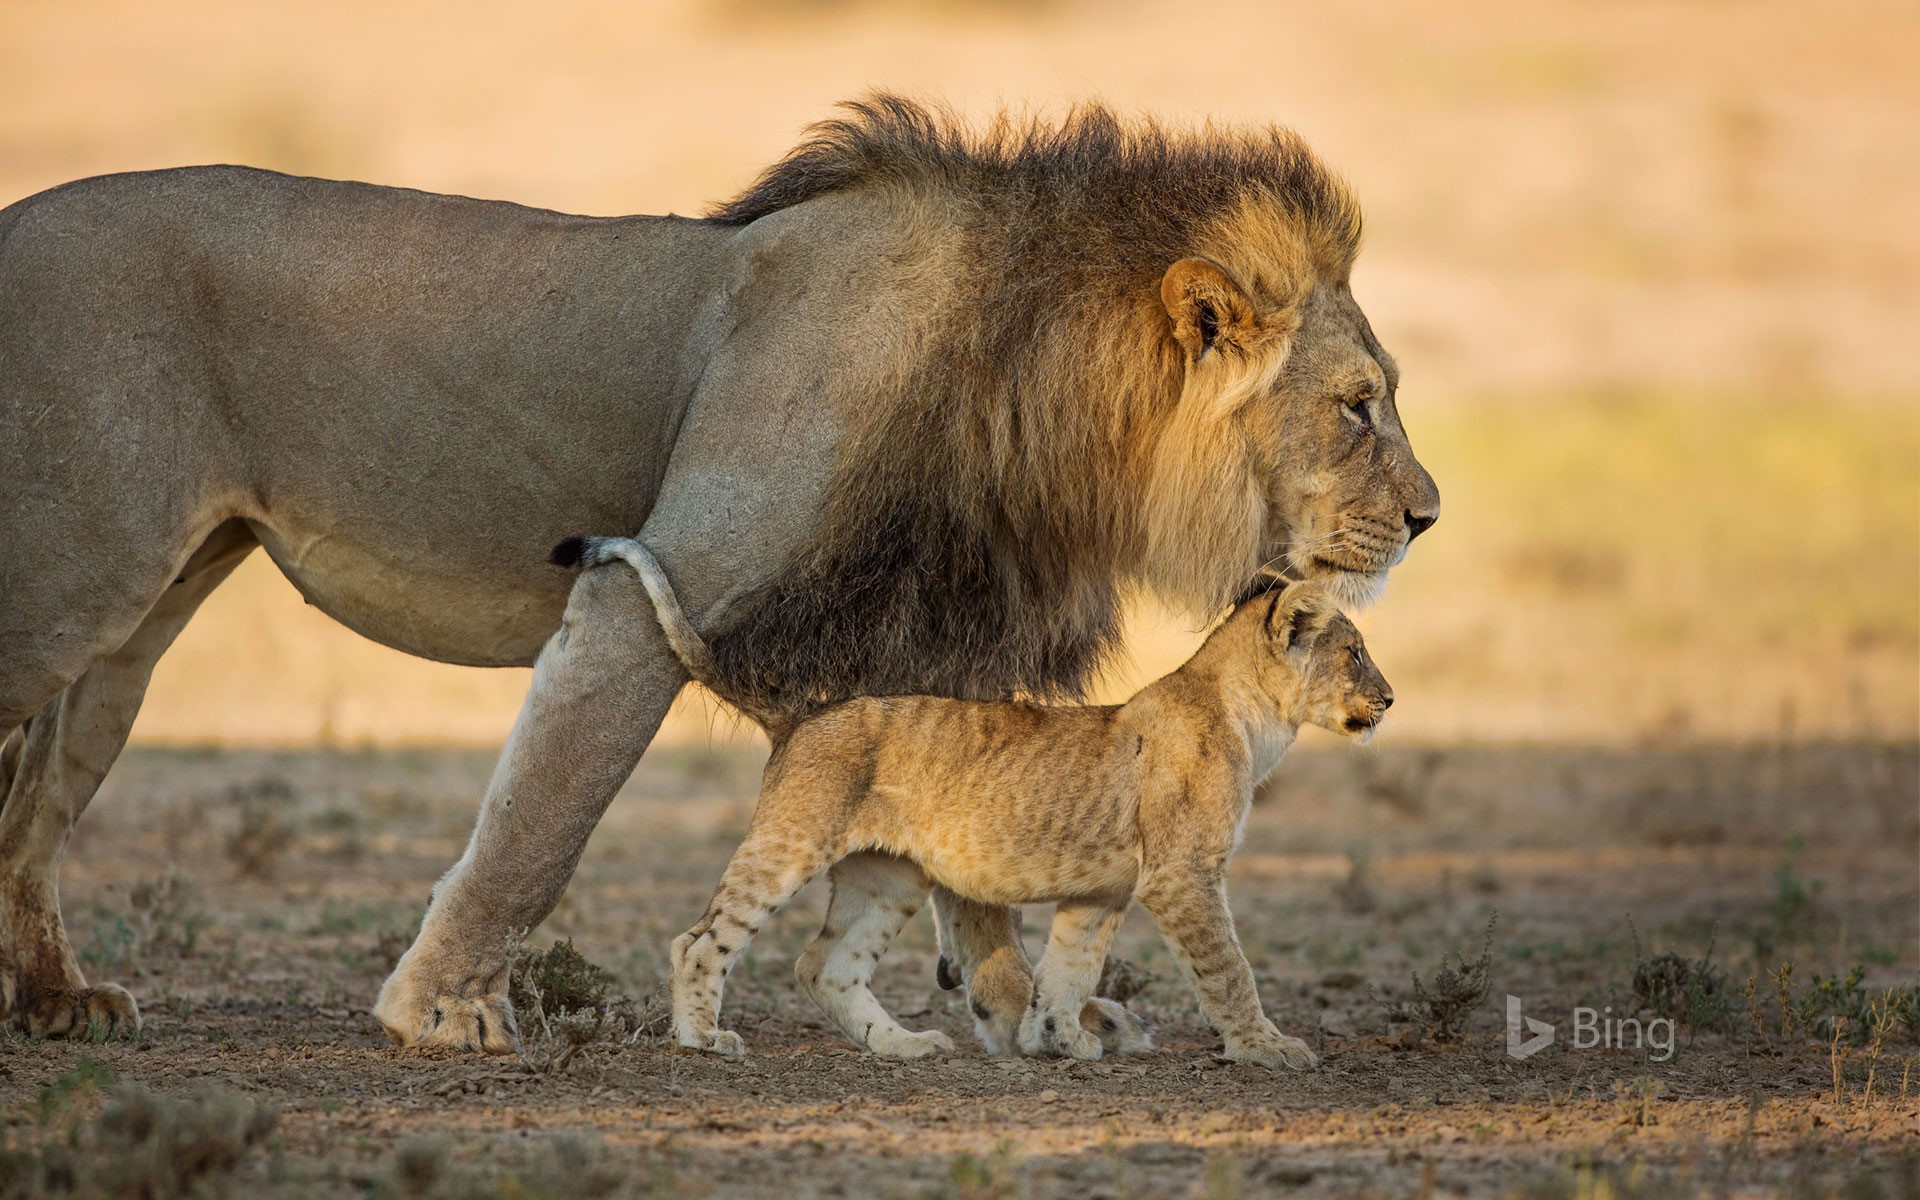 Male African lion and cub in Kgalagadi Transfrontier Park in southern Africa